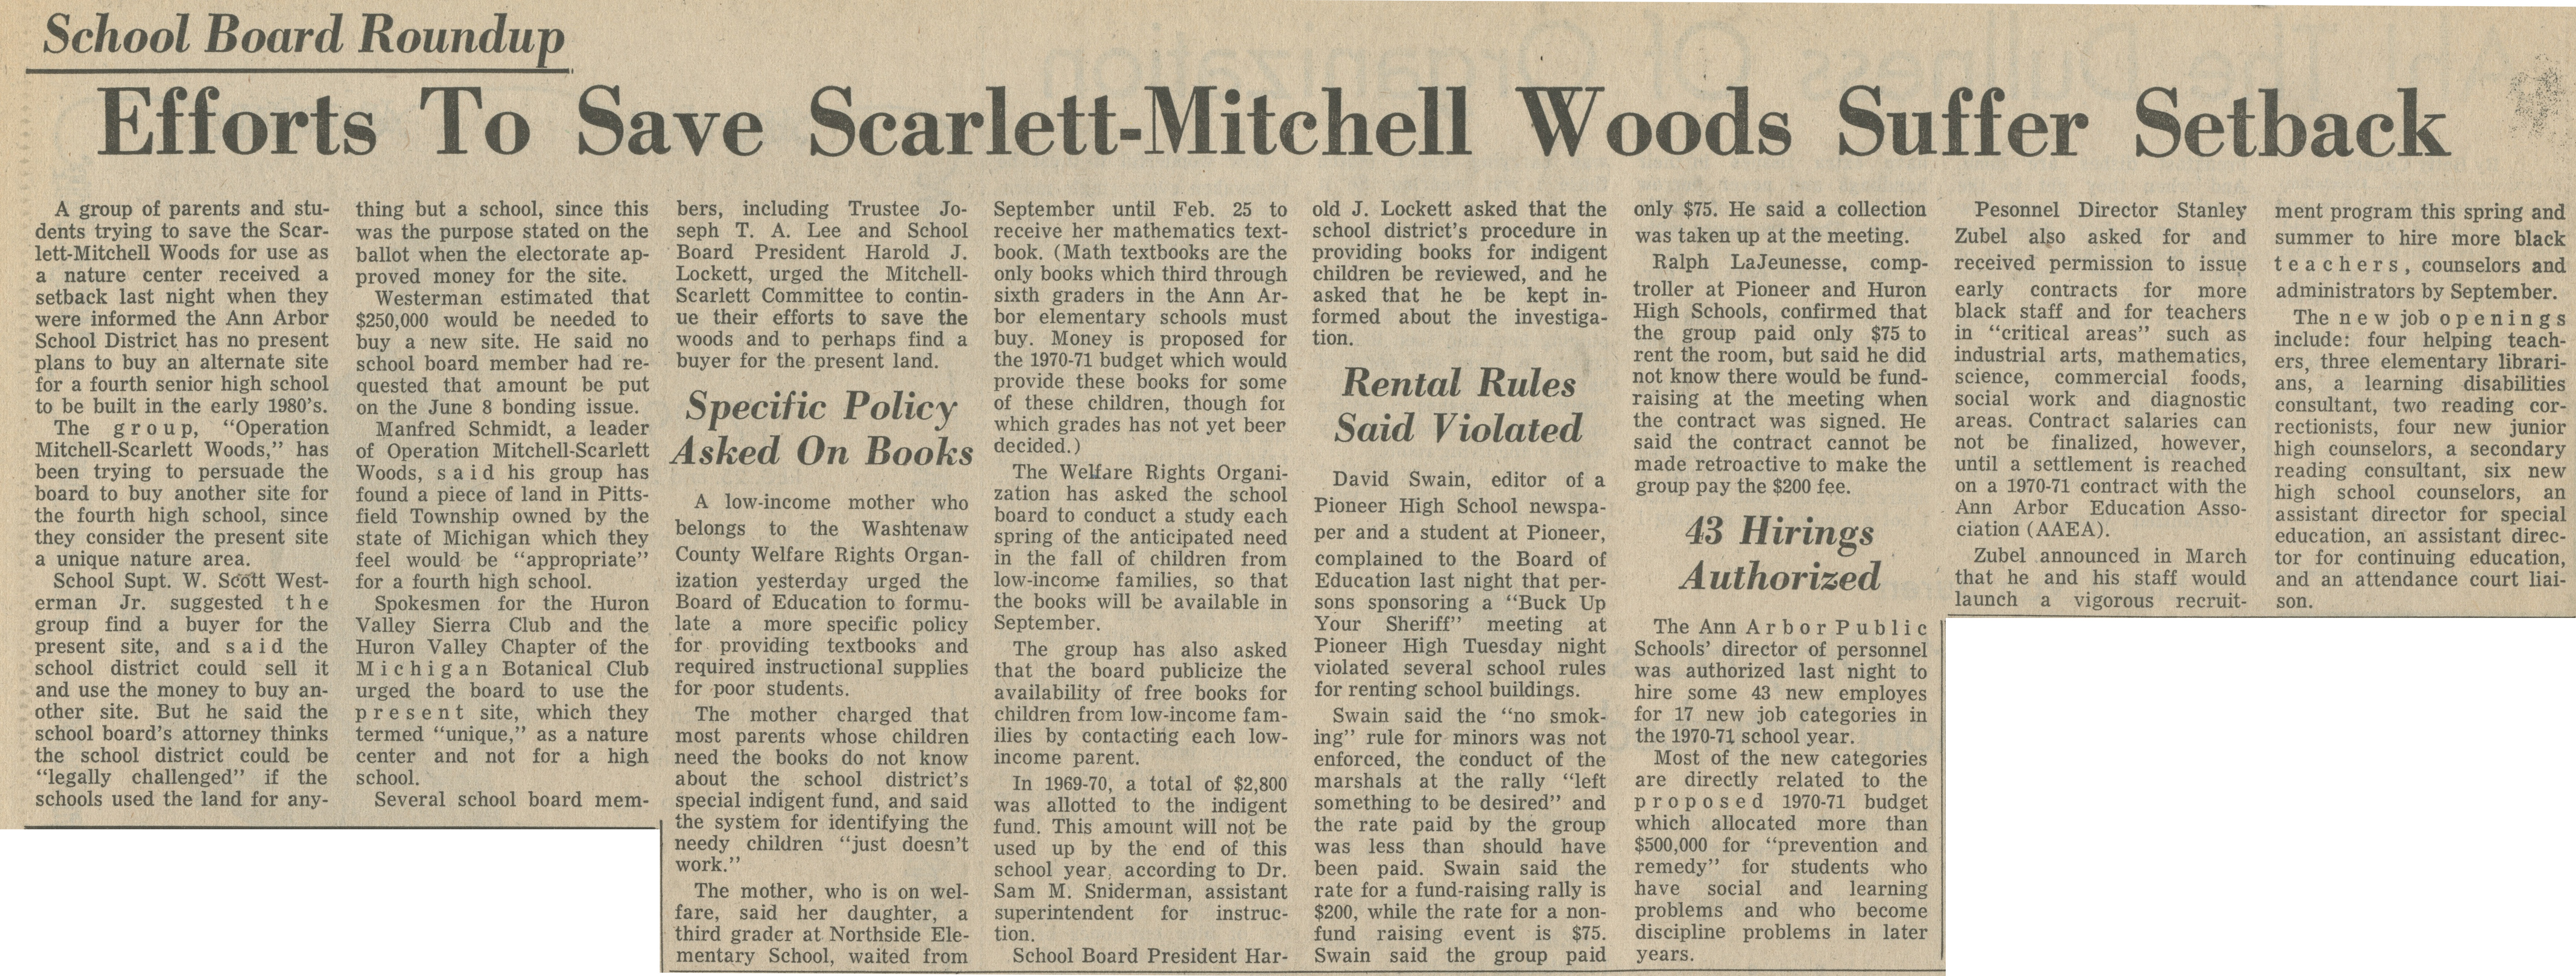 School Board Roundup ~ Efforts To Save Scarlett-Mitchell Woods Suffer Setback image